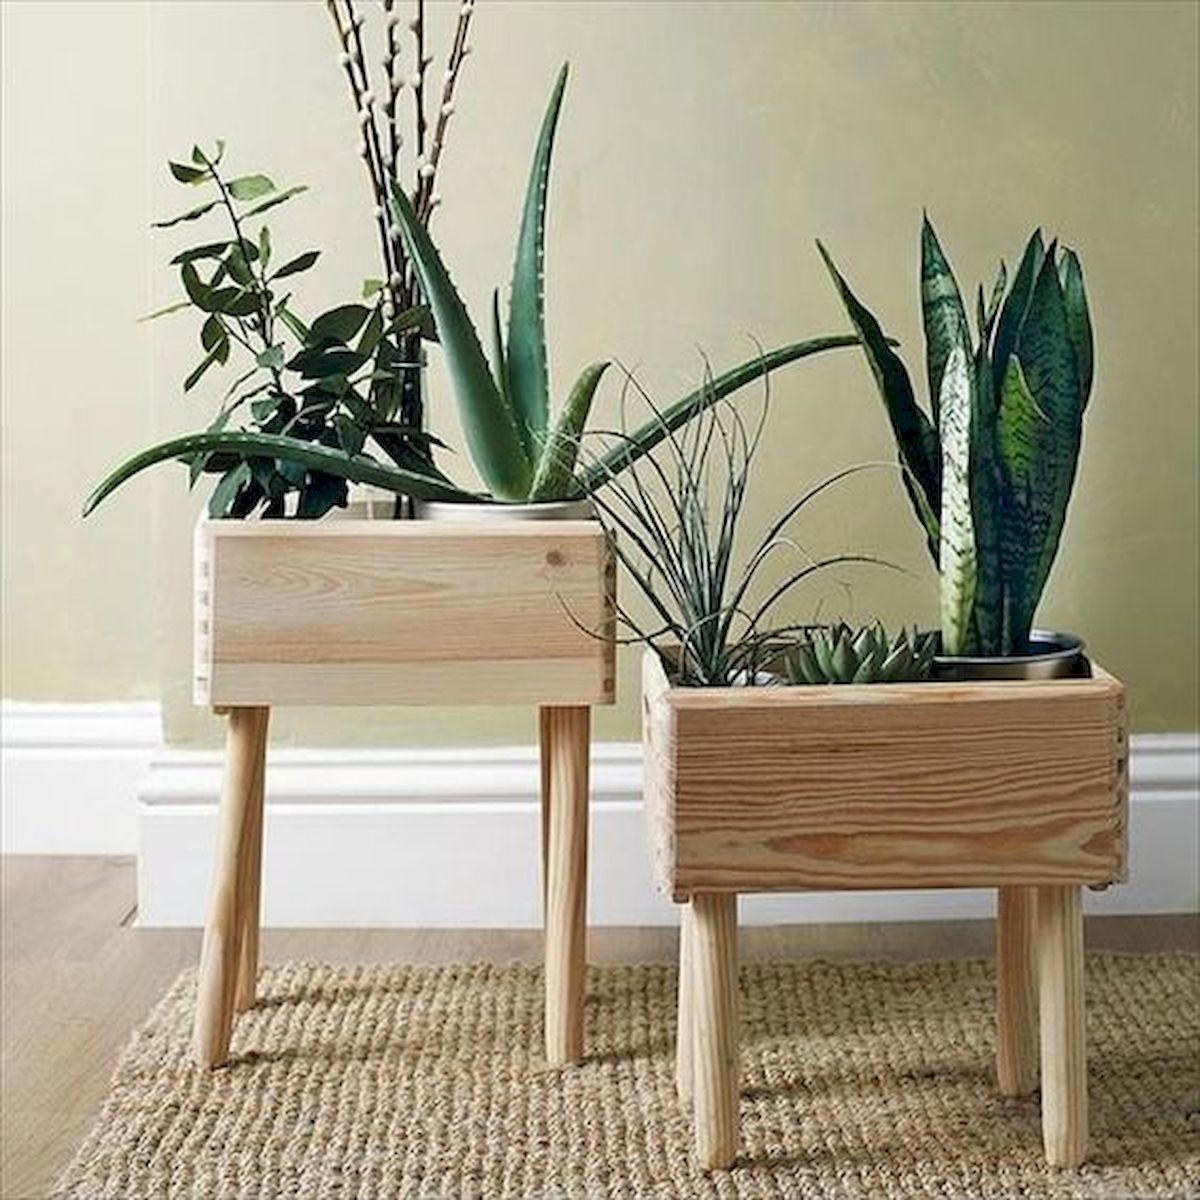 45 Easy and Cheap DIY Wood Furniture Ideas for Small House (44)